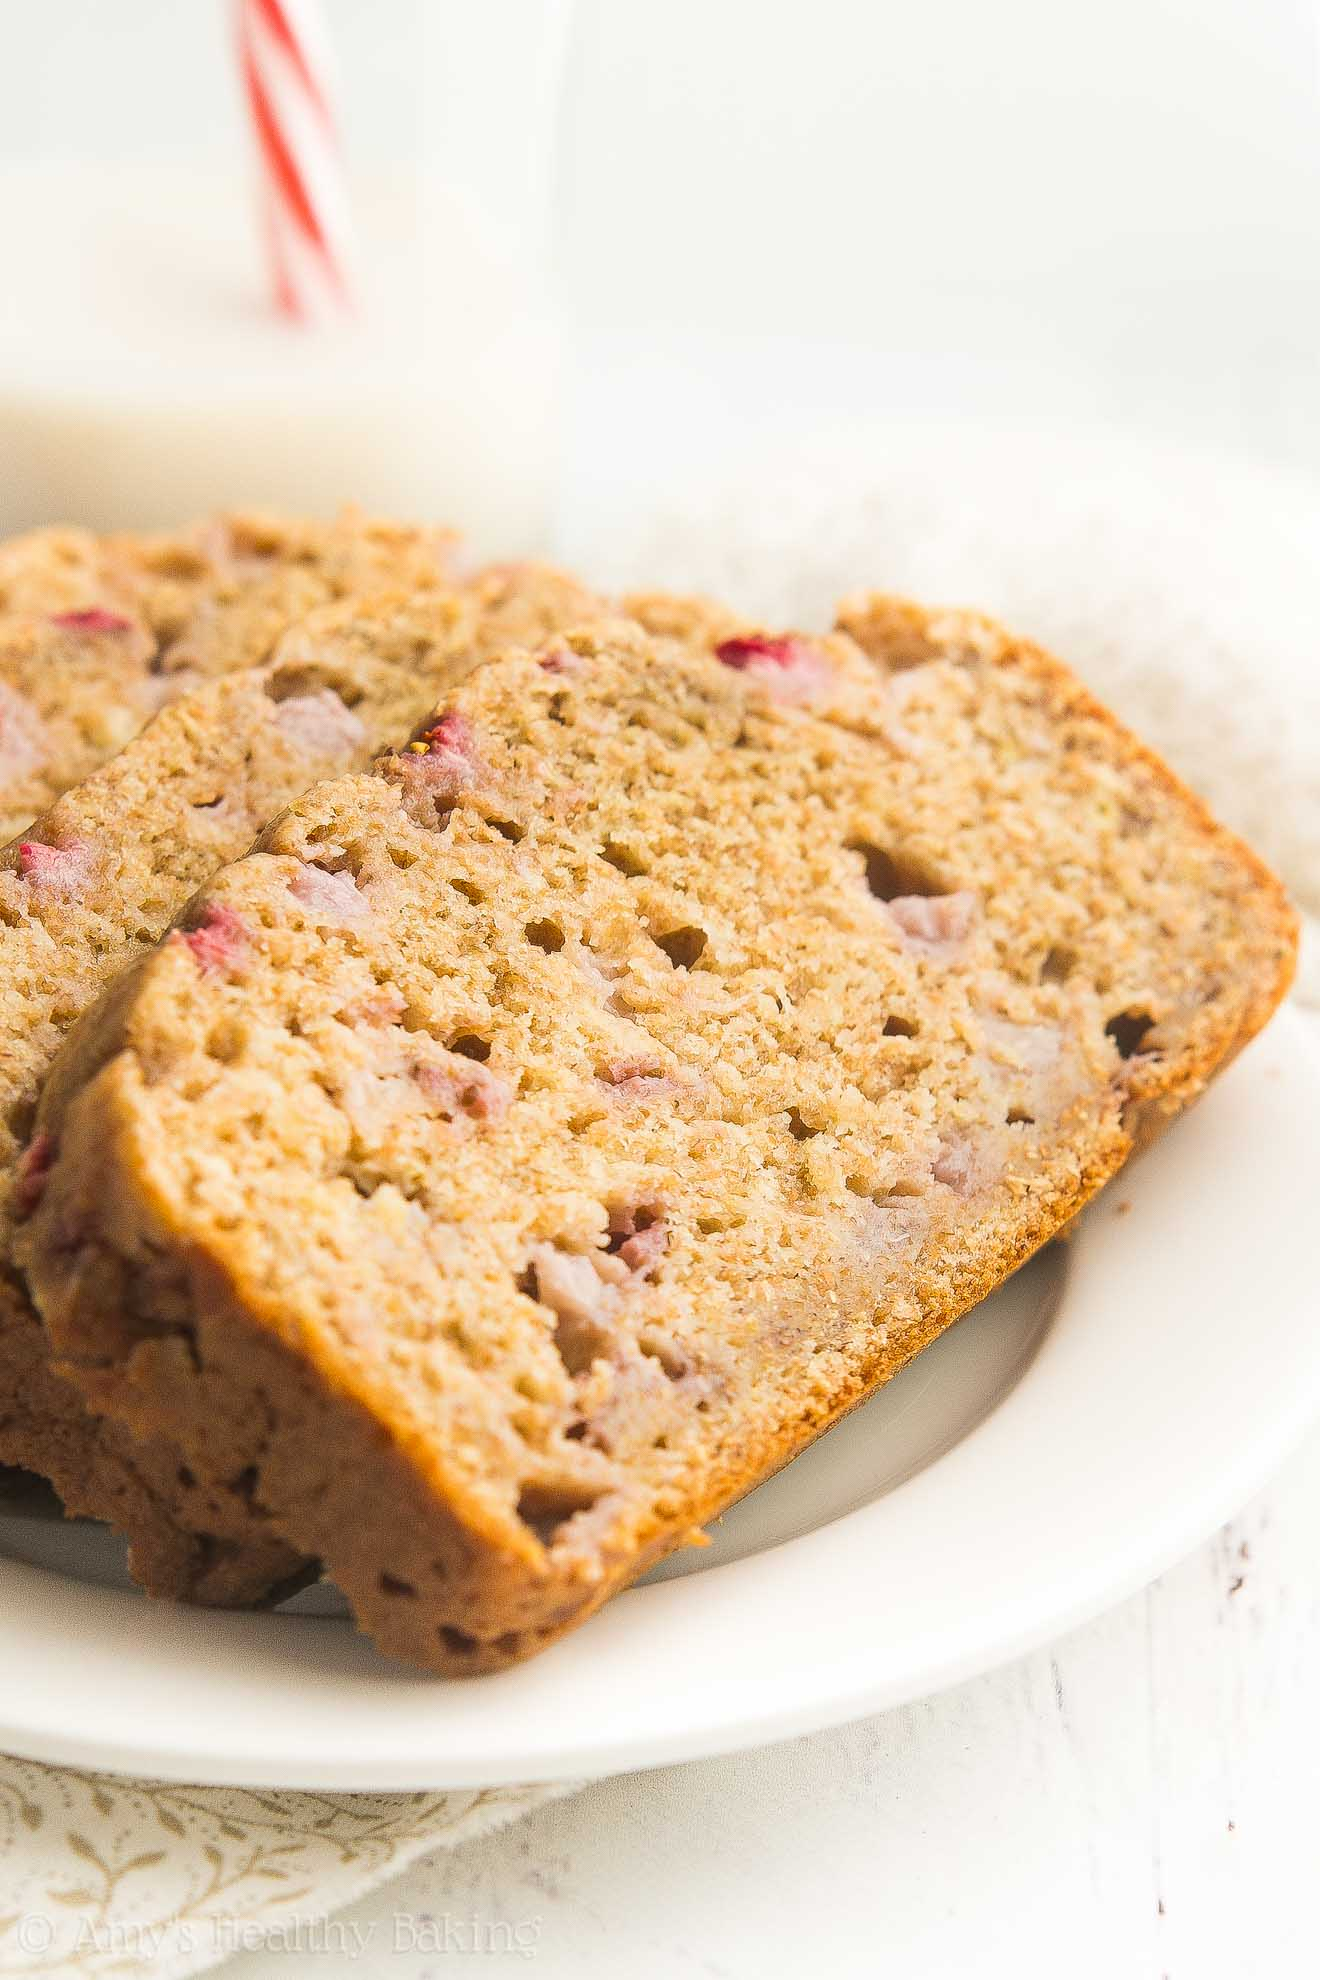 Healthy Strawberry Buttermilk Banana Bread - so easy, 107 calories & 4g+ of protein! A great guilt-free breakfast or snack!